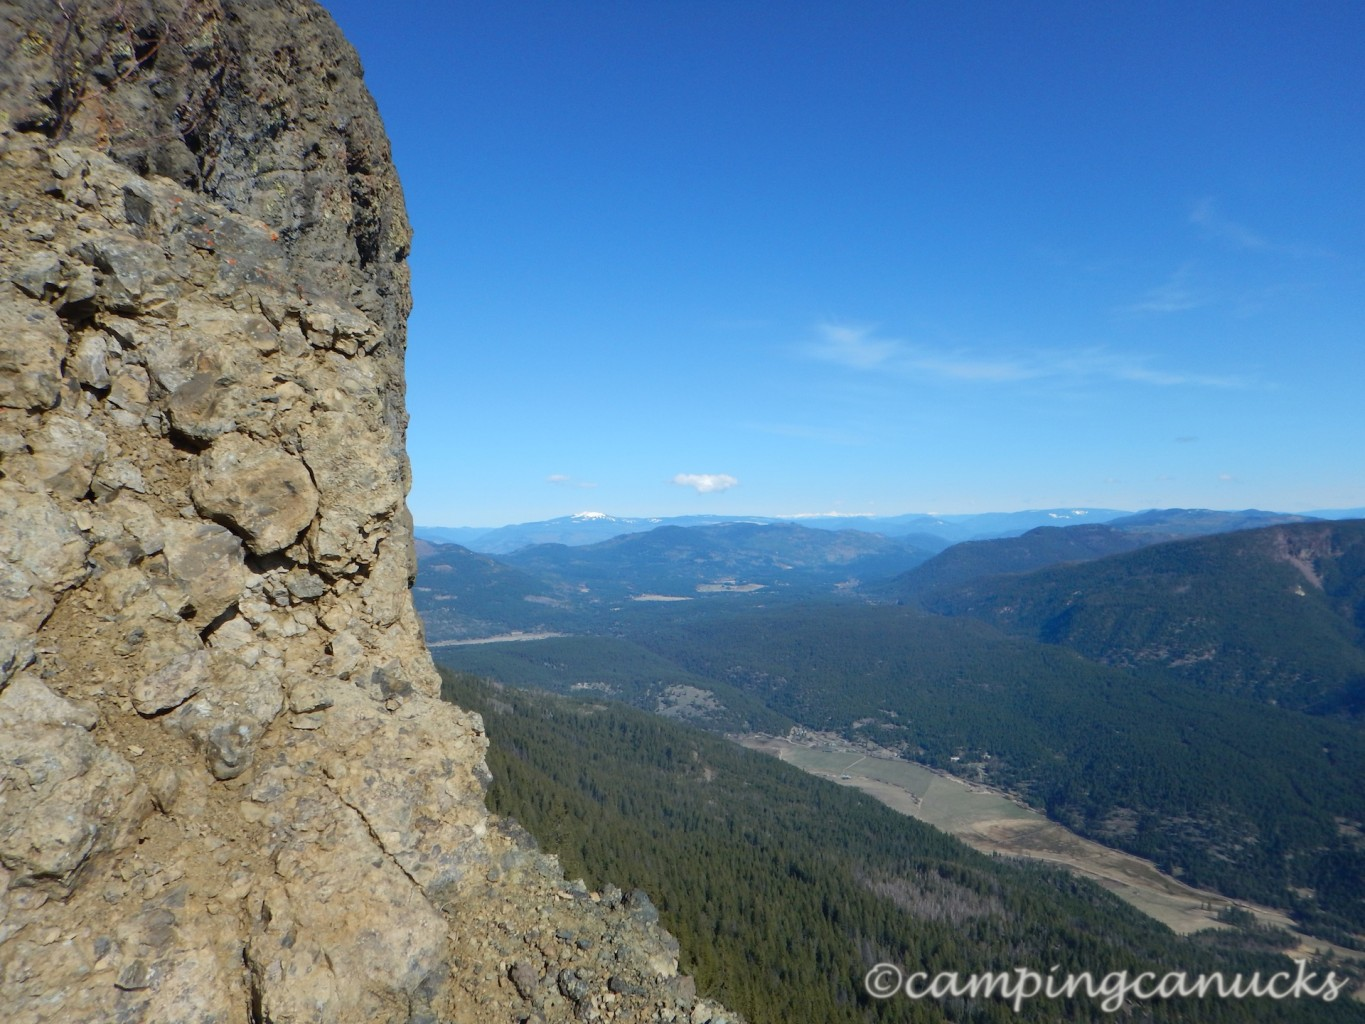 North towards Sun Peaks and Mount Tod